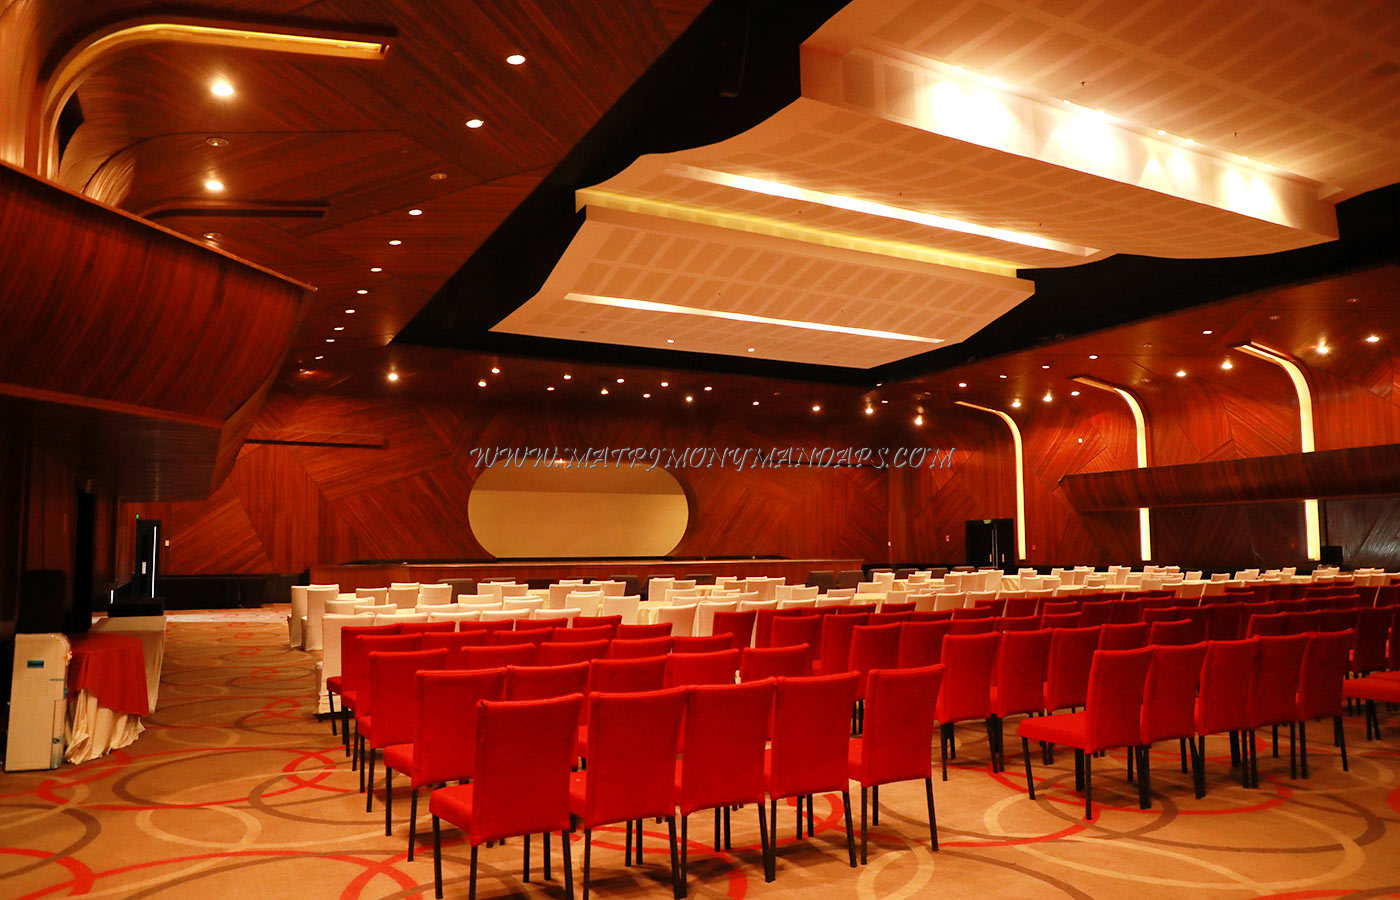 Find the availability of the Le Meridien Kochi Oman Hall (A/C) in Maradu, Kochi and avail special offers